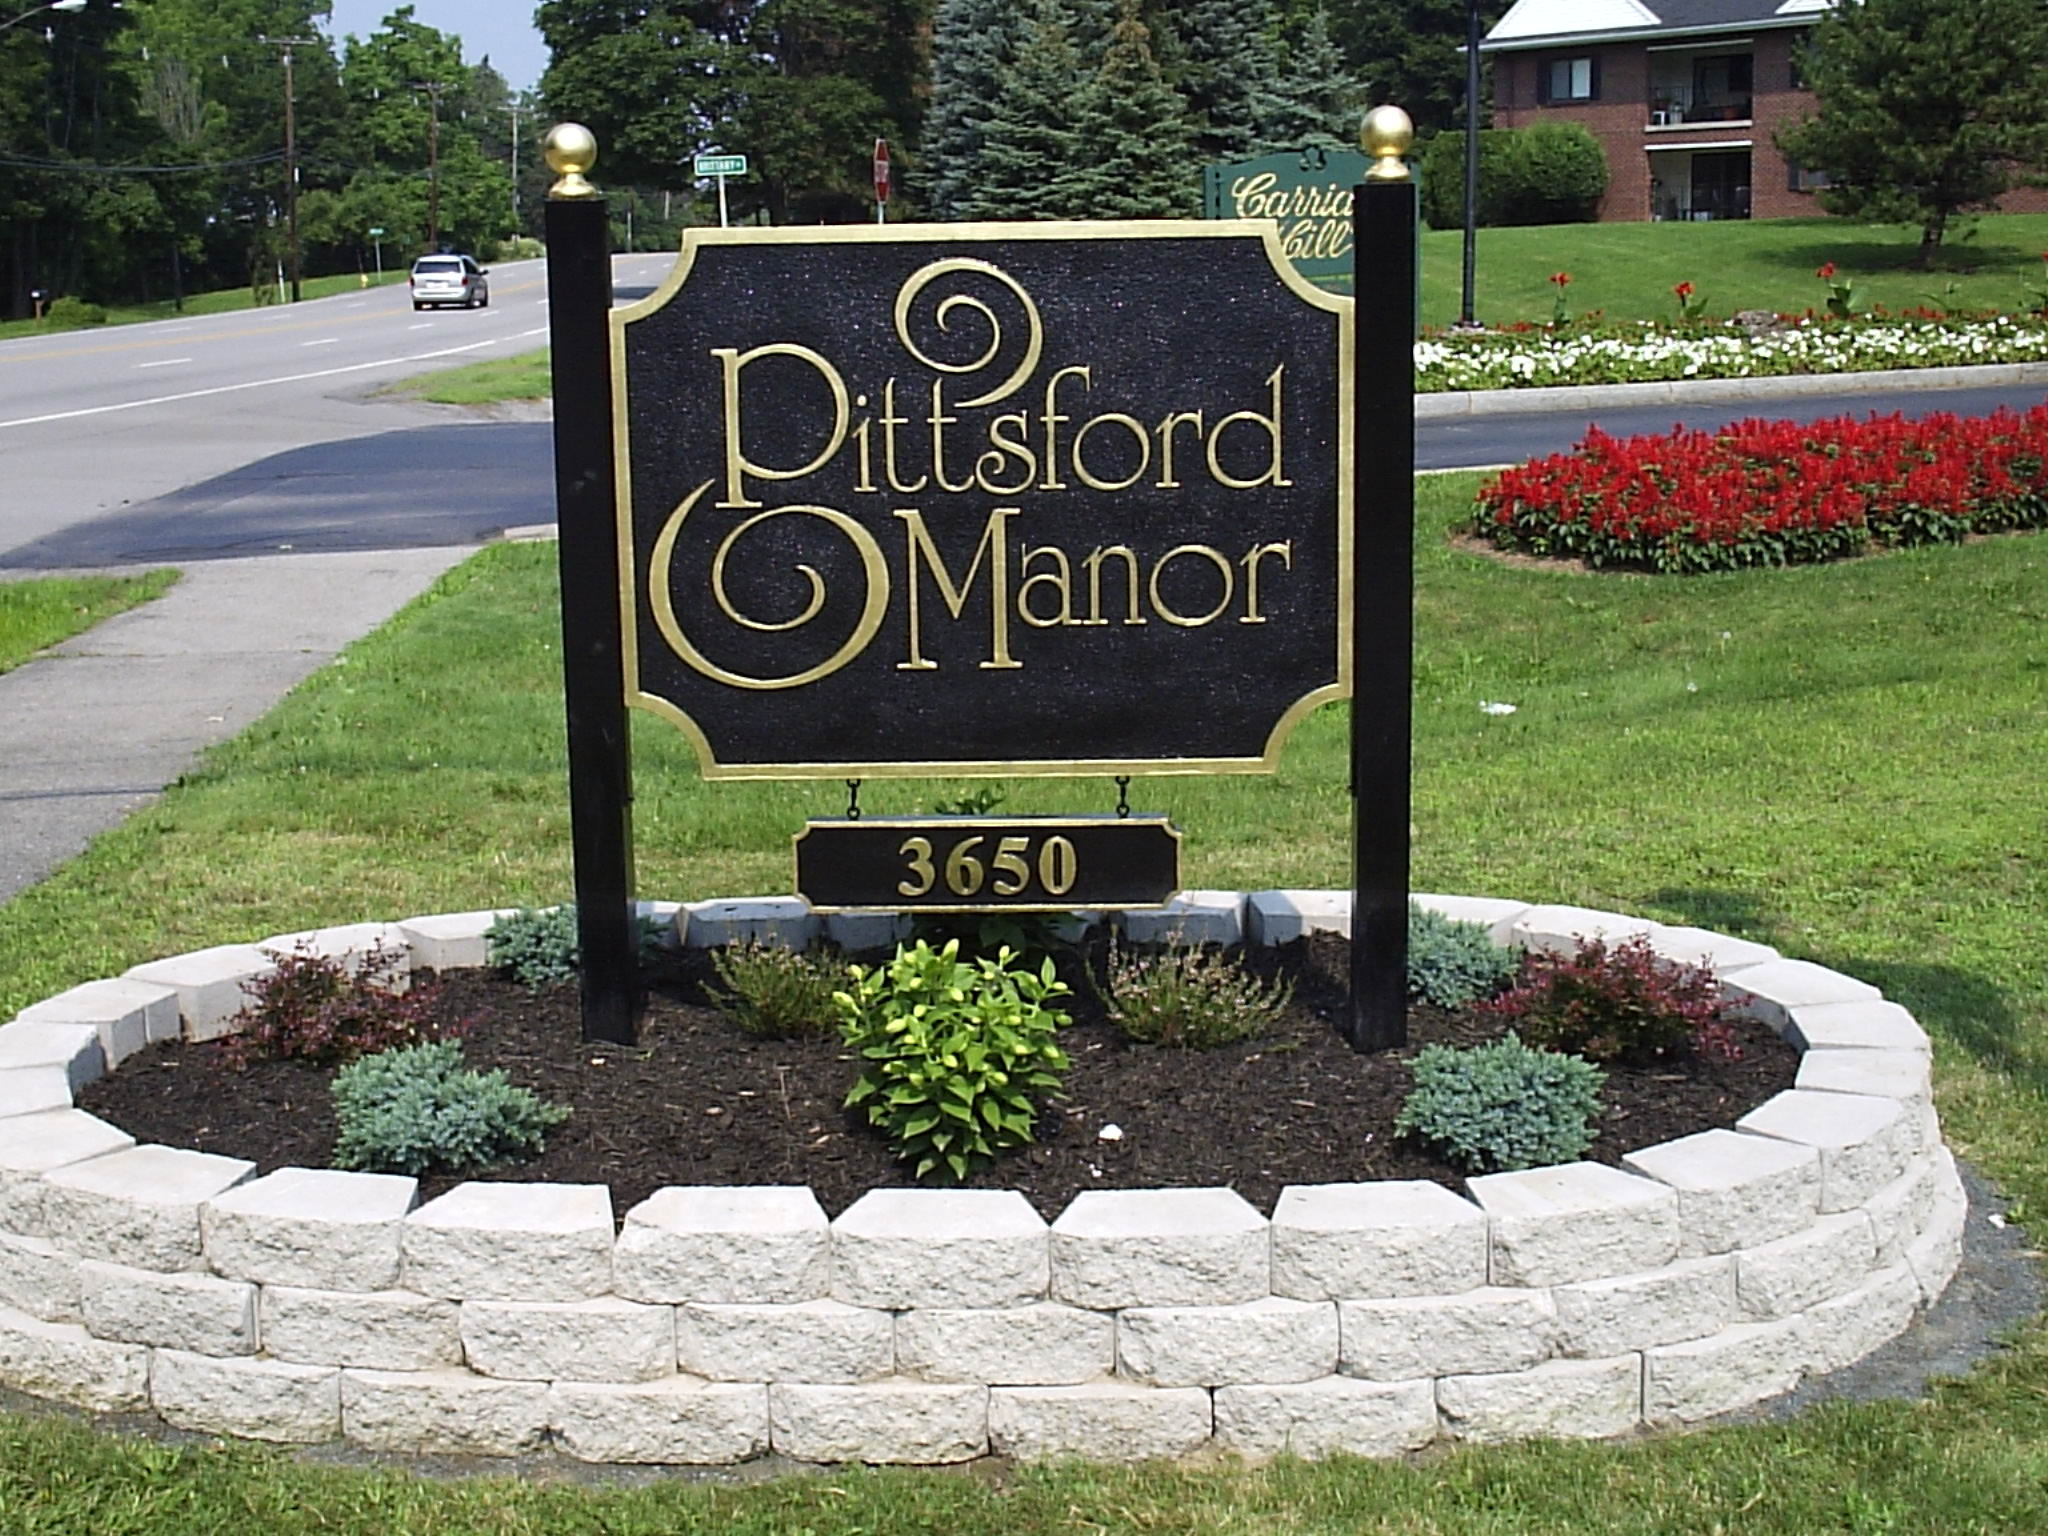 Pittsford manor 2 .JPG